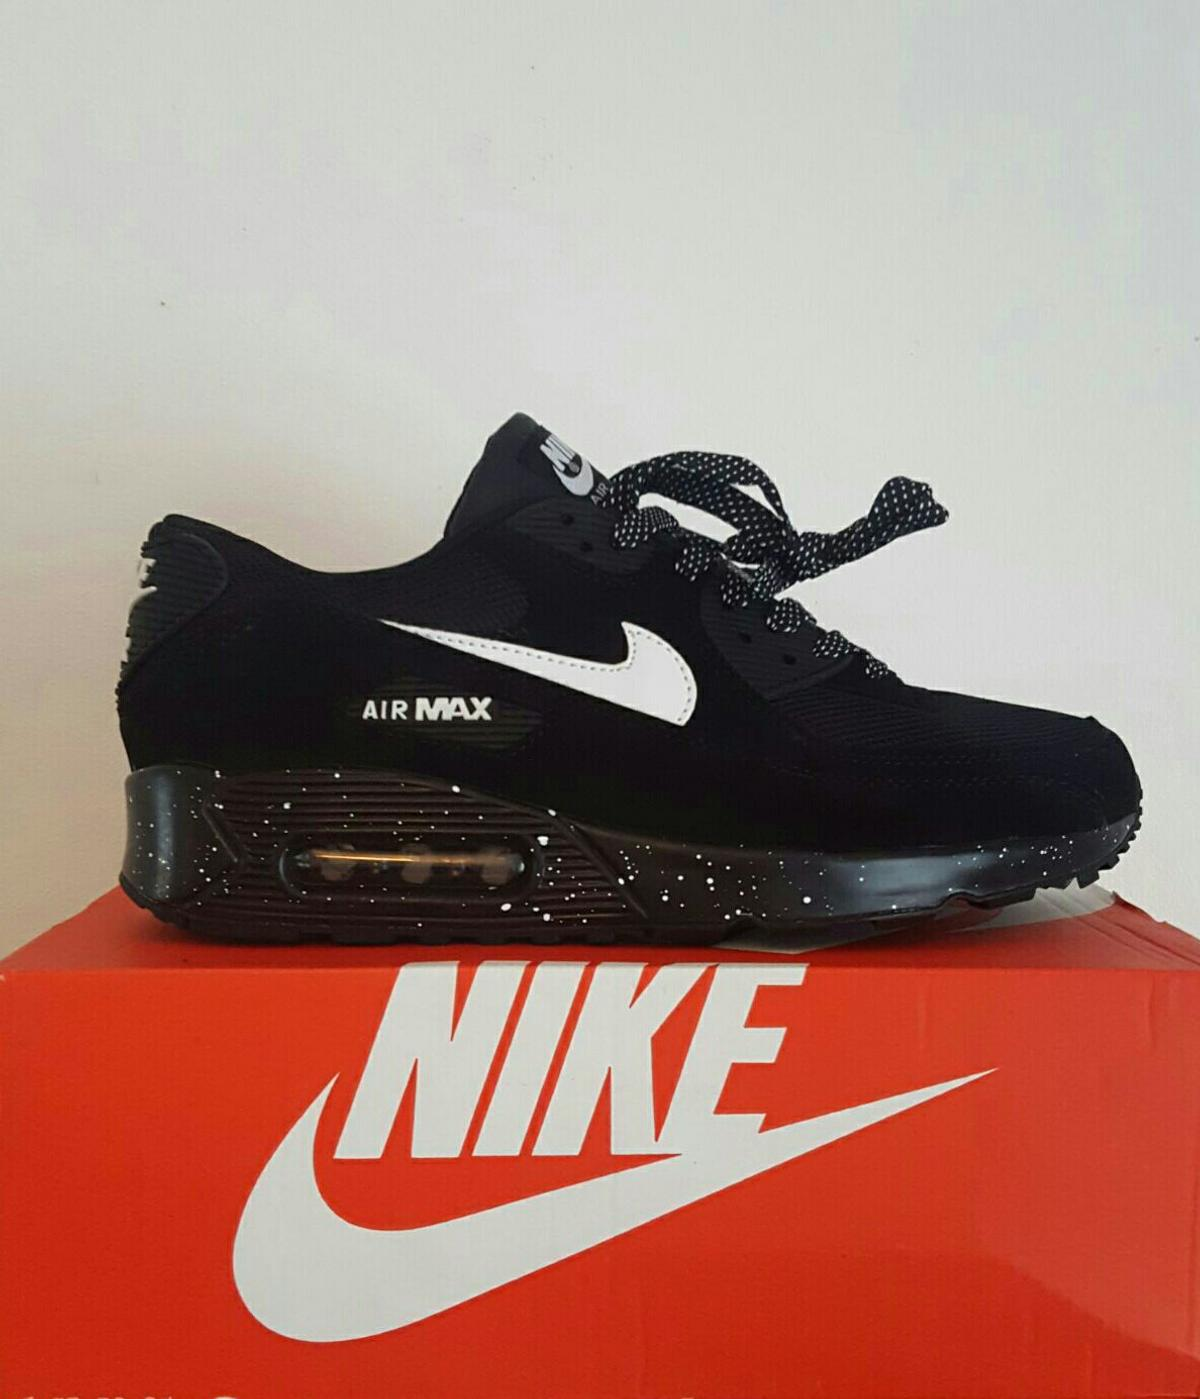 a8ab8ffc6 Nike air max 90 brand new in RM7 Romford for £45.00 for sale - Shpock